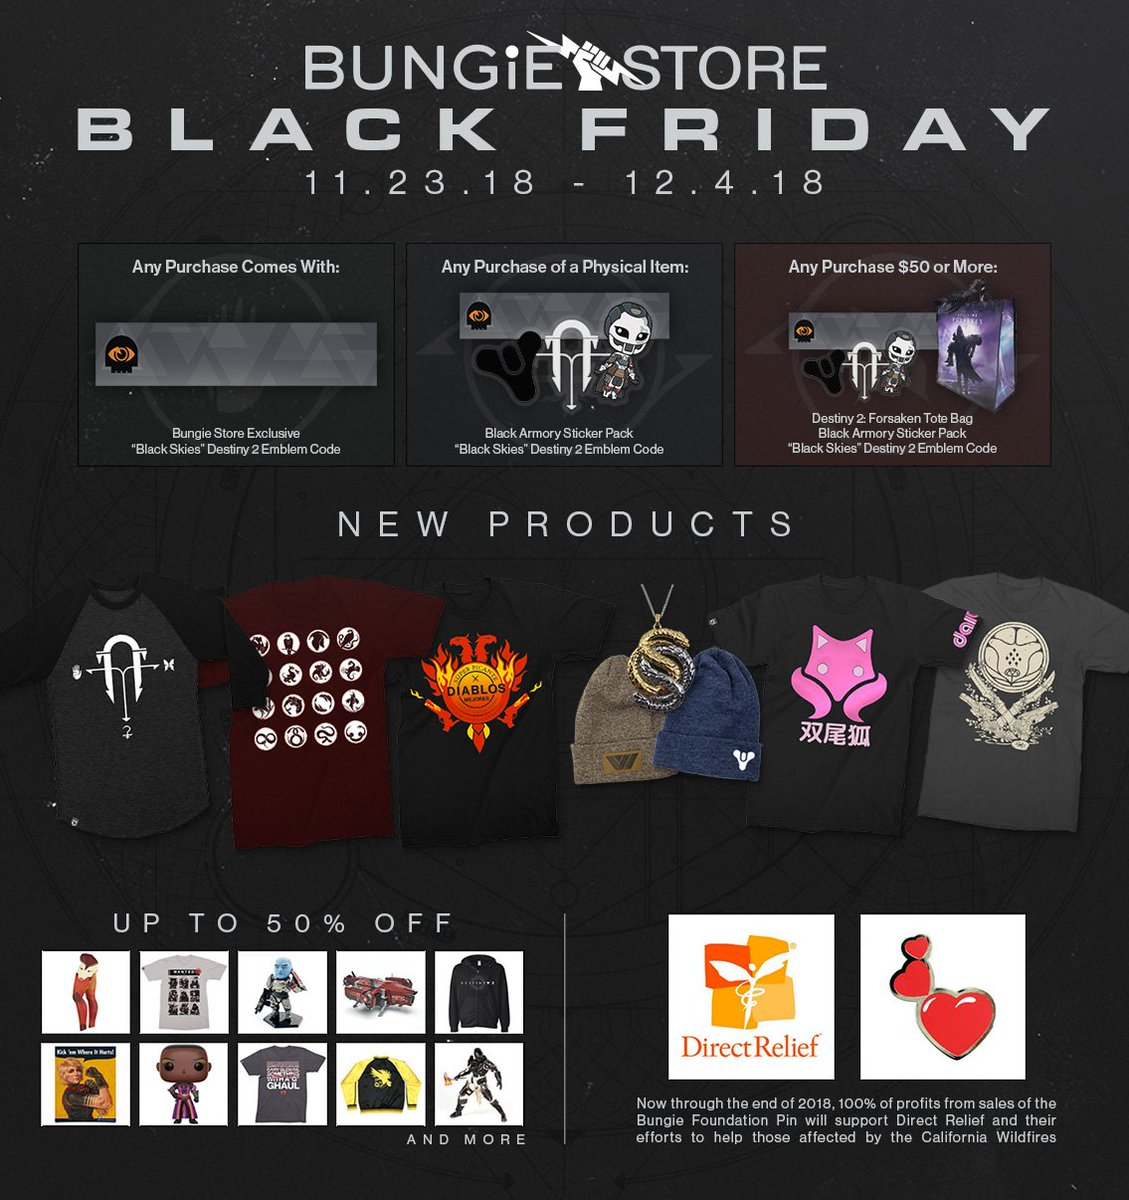 e8ff7d5400cc 100% of profits from Bungie Foundation pin support CA wildfire  reliefpic.twitter.com ZsaBYF3TRT